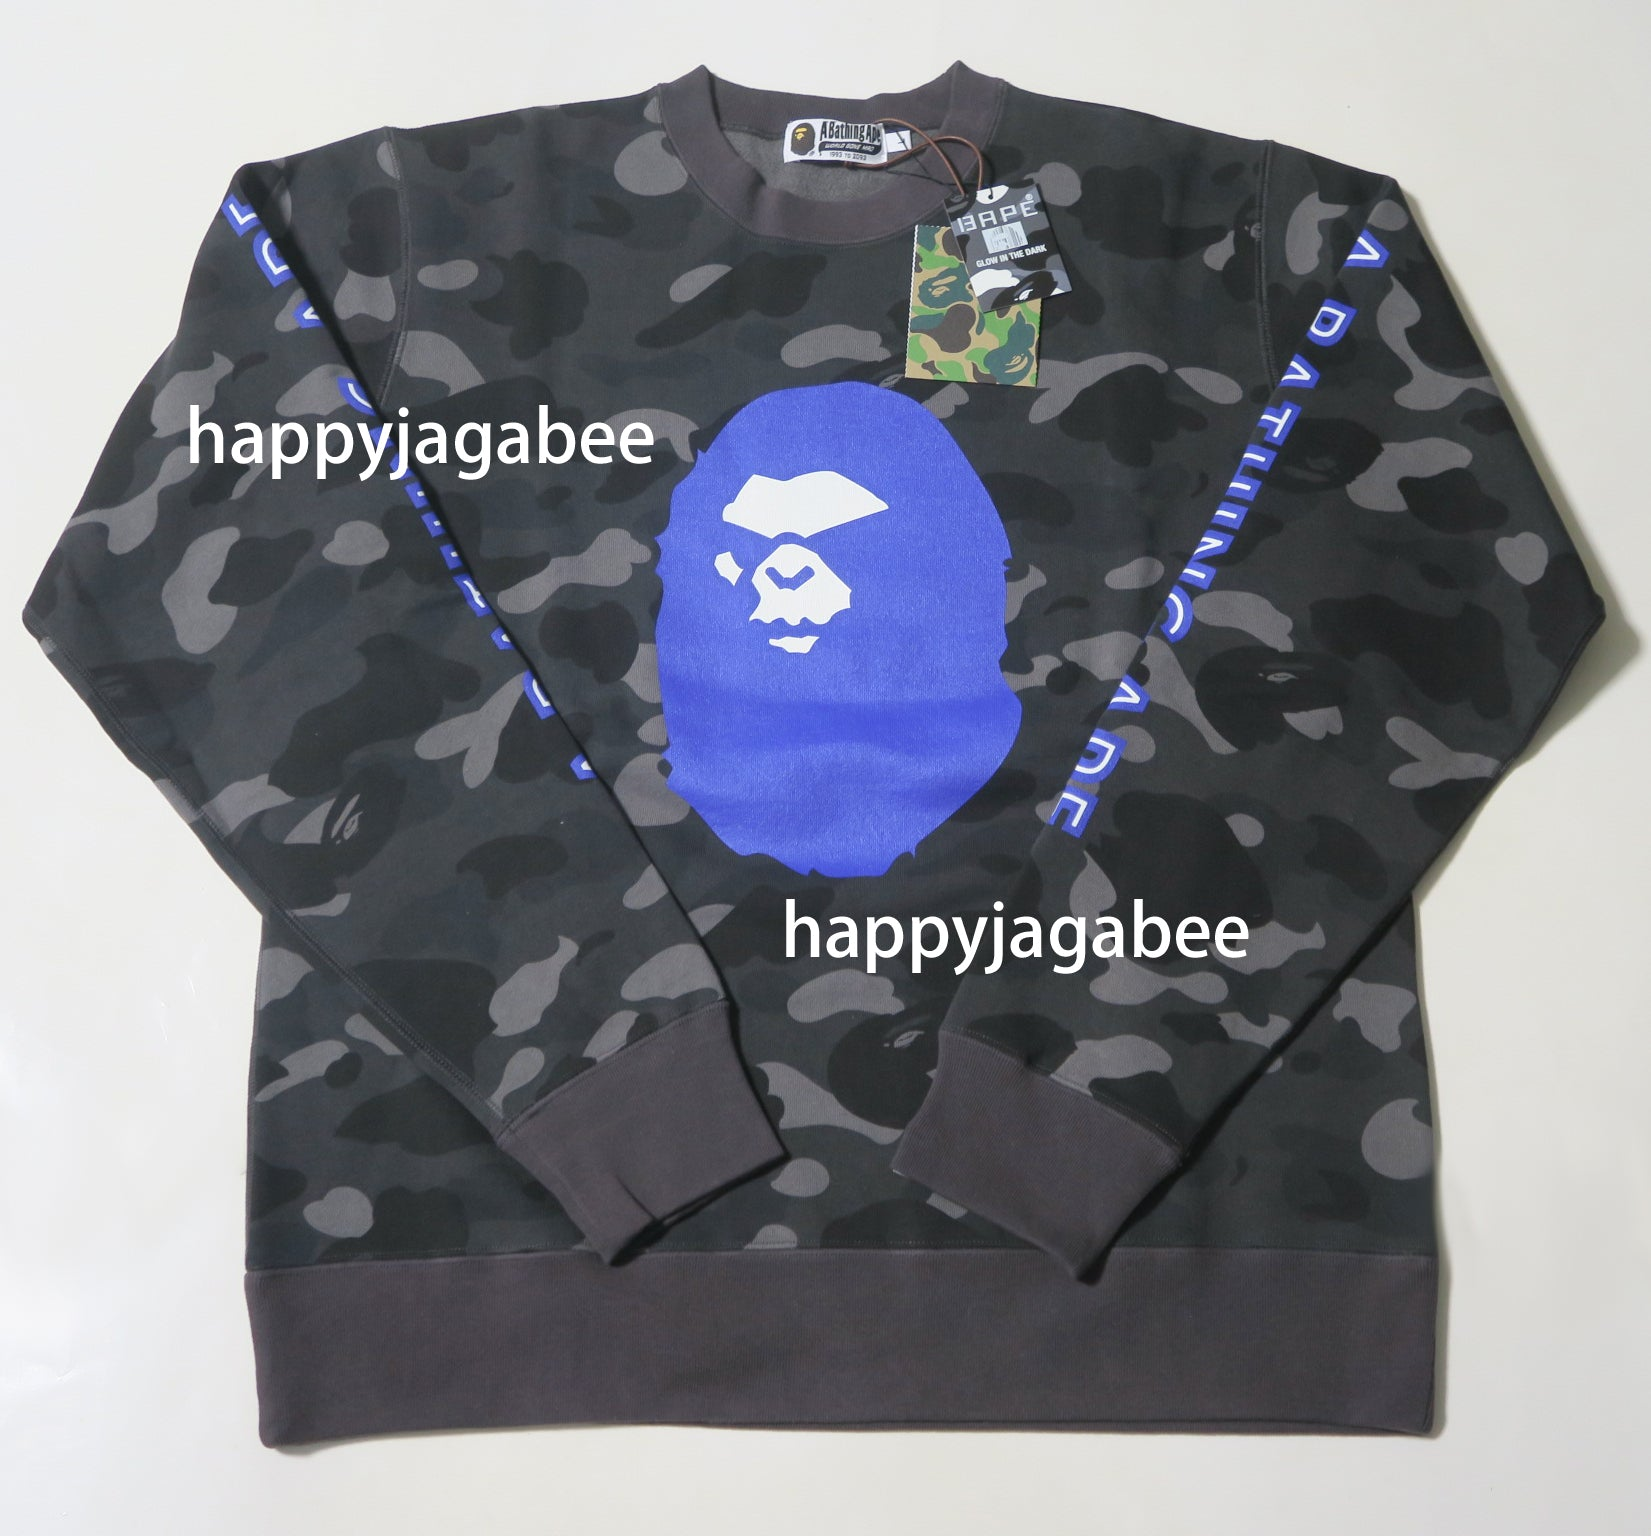 77187c3b A BATHING APE COLOR CAMO MAD FACE WIDE CREW NECK - happyjagabee store